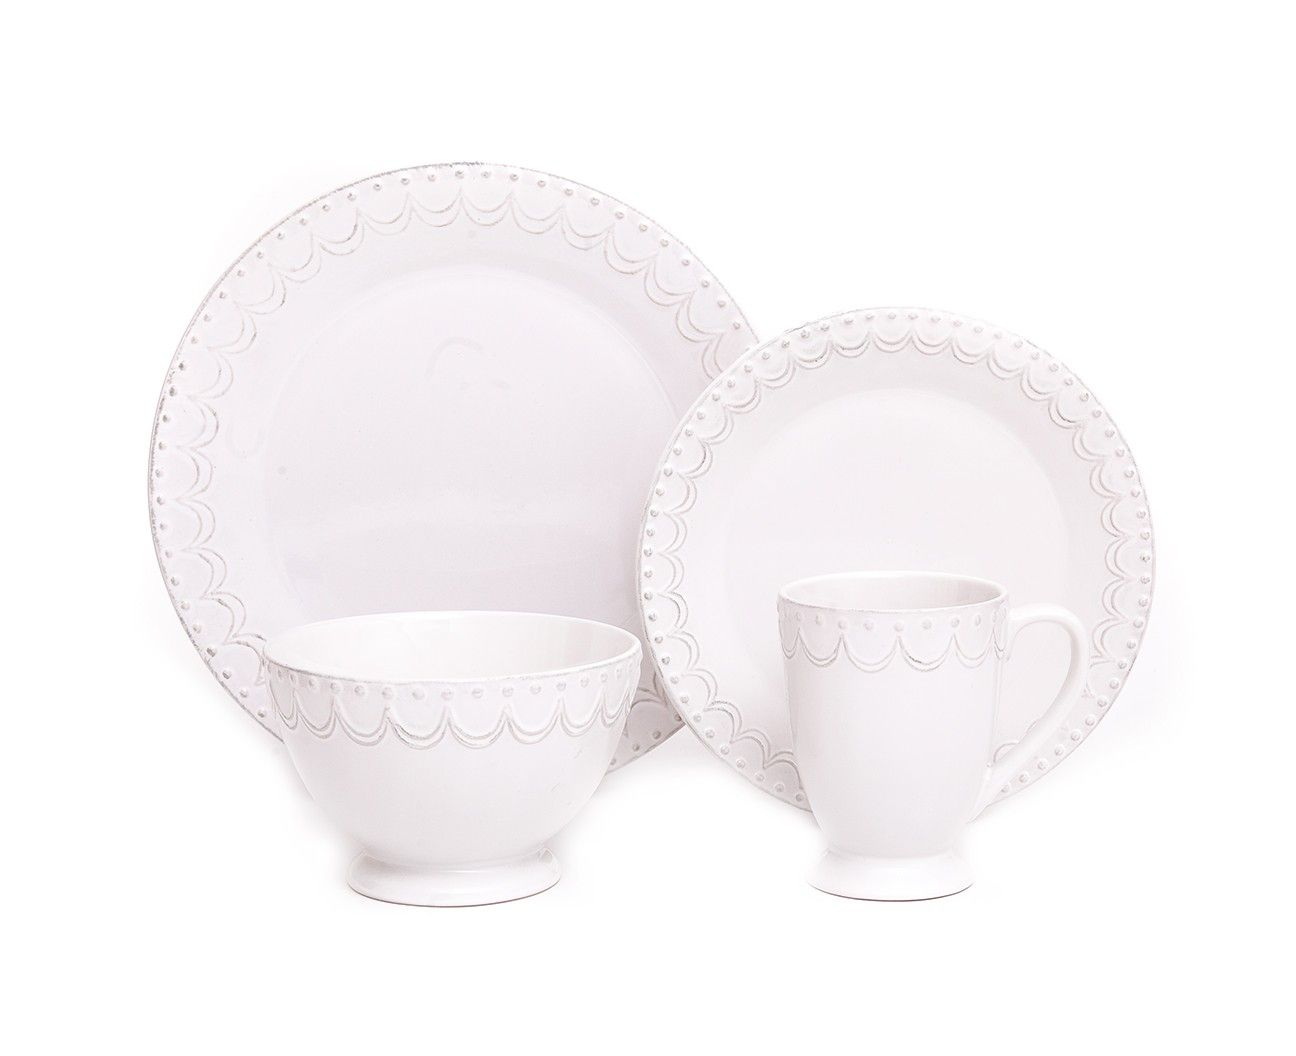 LACE EMBOSSED 16PC DINNERWARE SET - Dinnerware - Dining | Stokes Inc. Canadau0027s Online Kitchen  sc 1 st  Pinterest & LACE EMBOSSED 16PC DINNERWARE SET - Dinnerware - Dining | Stokes Inc ...